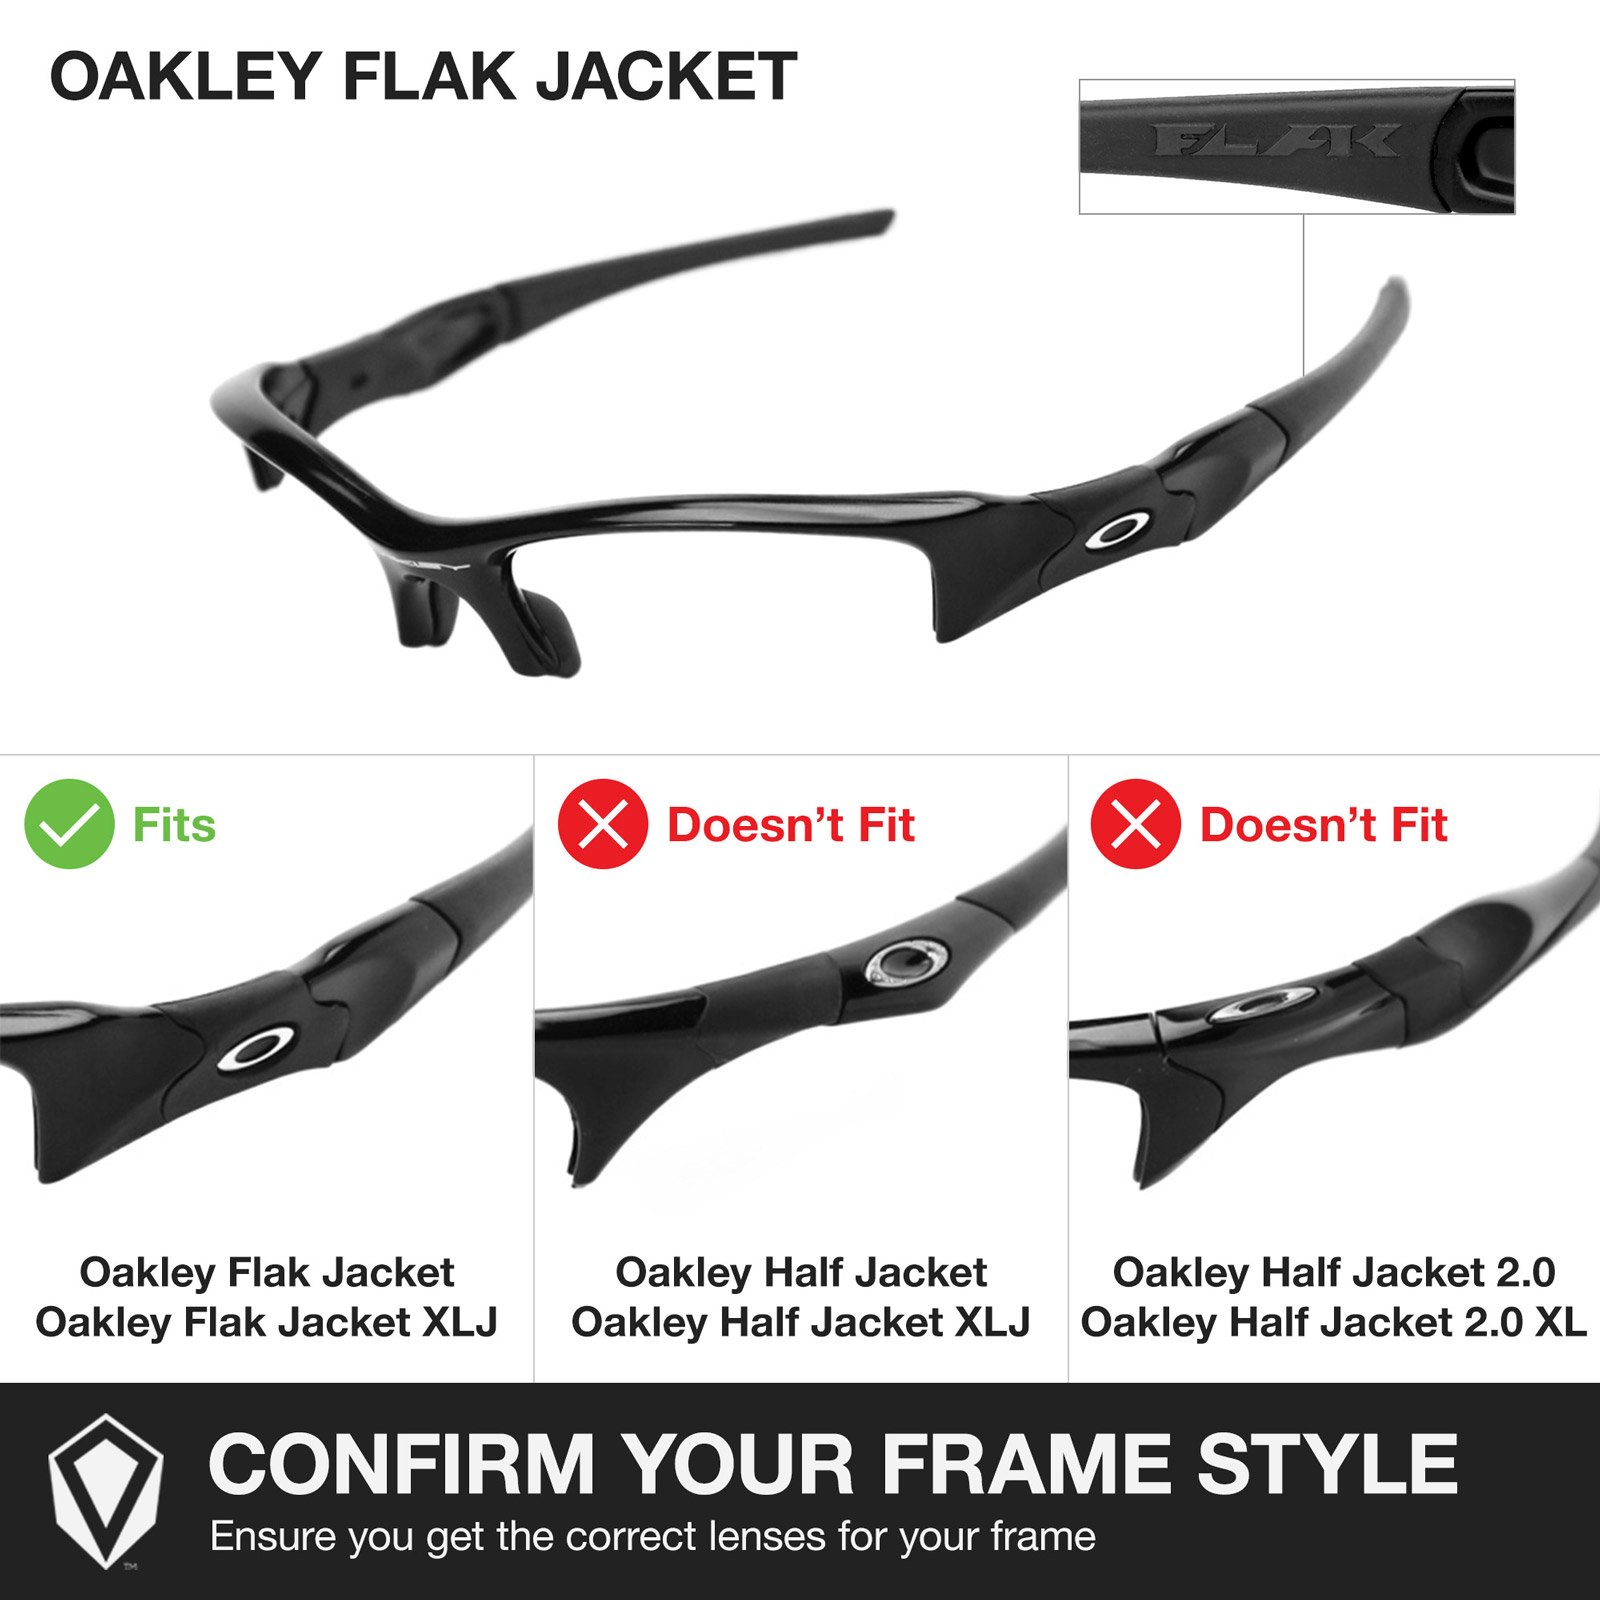 Revant Replacement Lenses for Oakley Flak Jacket 2 Pair Combo Pack K001 by Revant (Image #5)